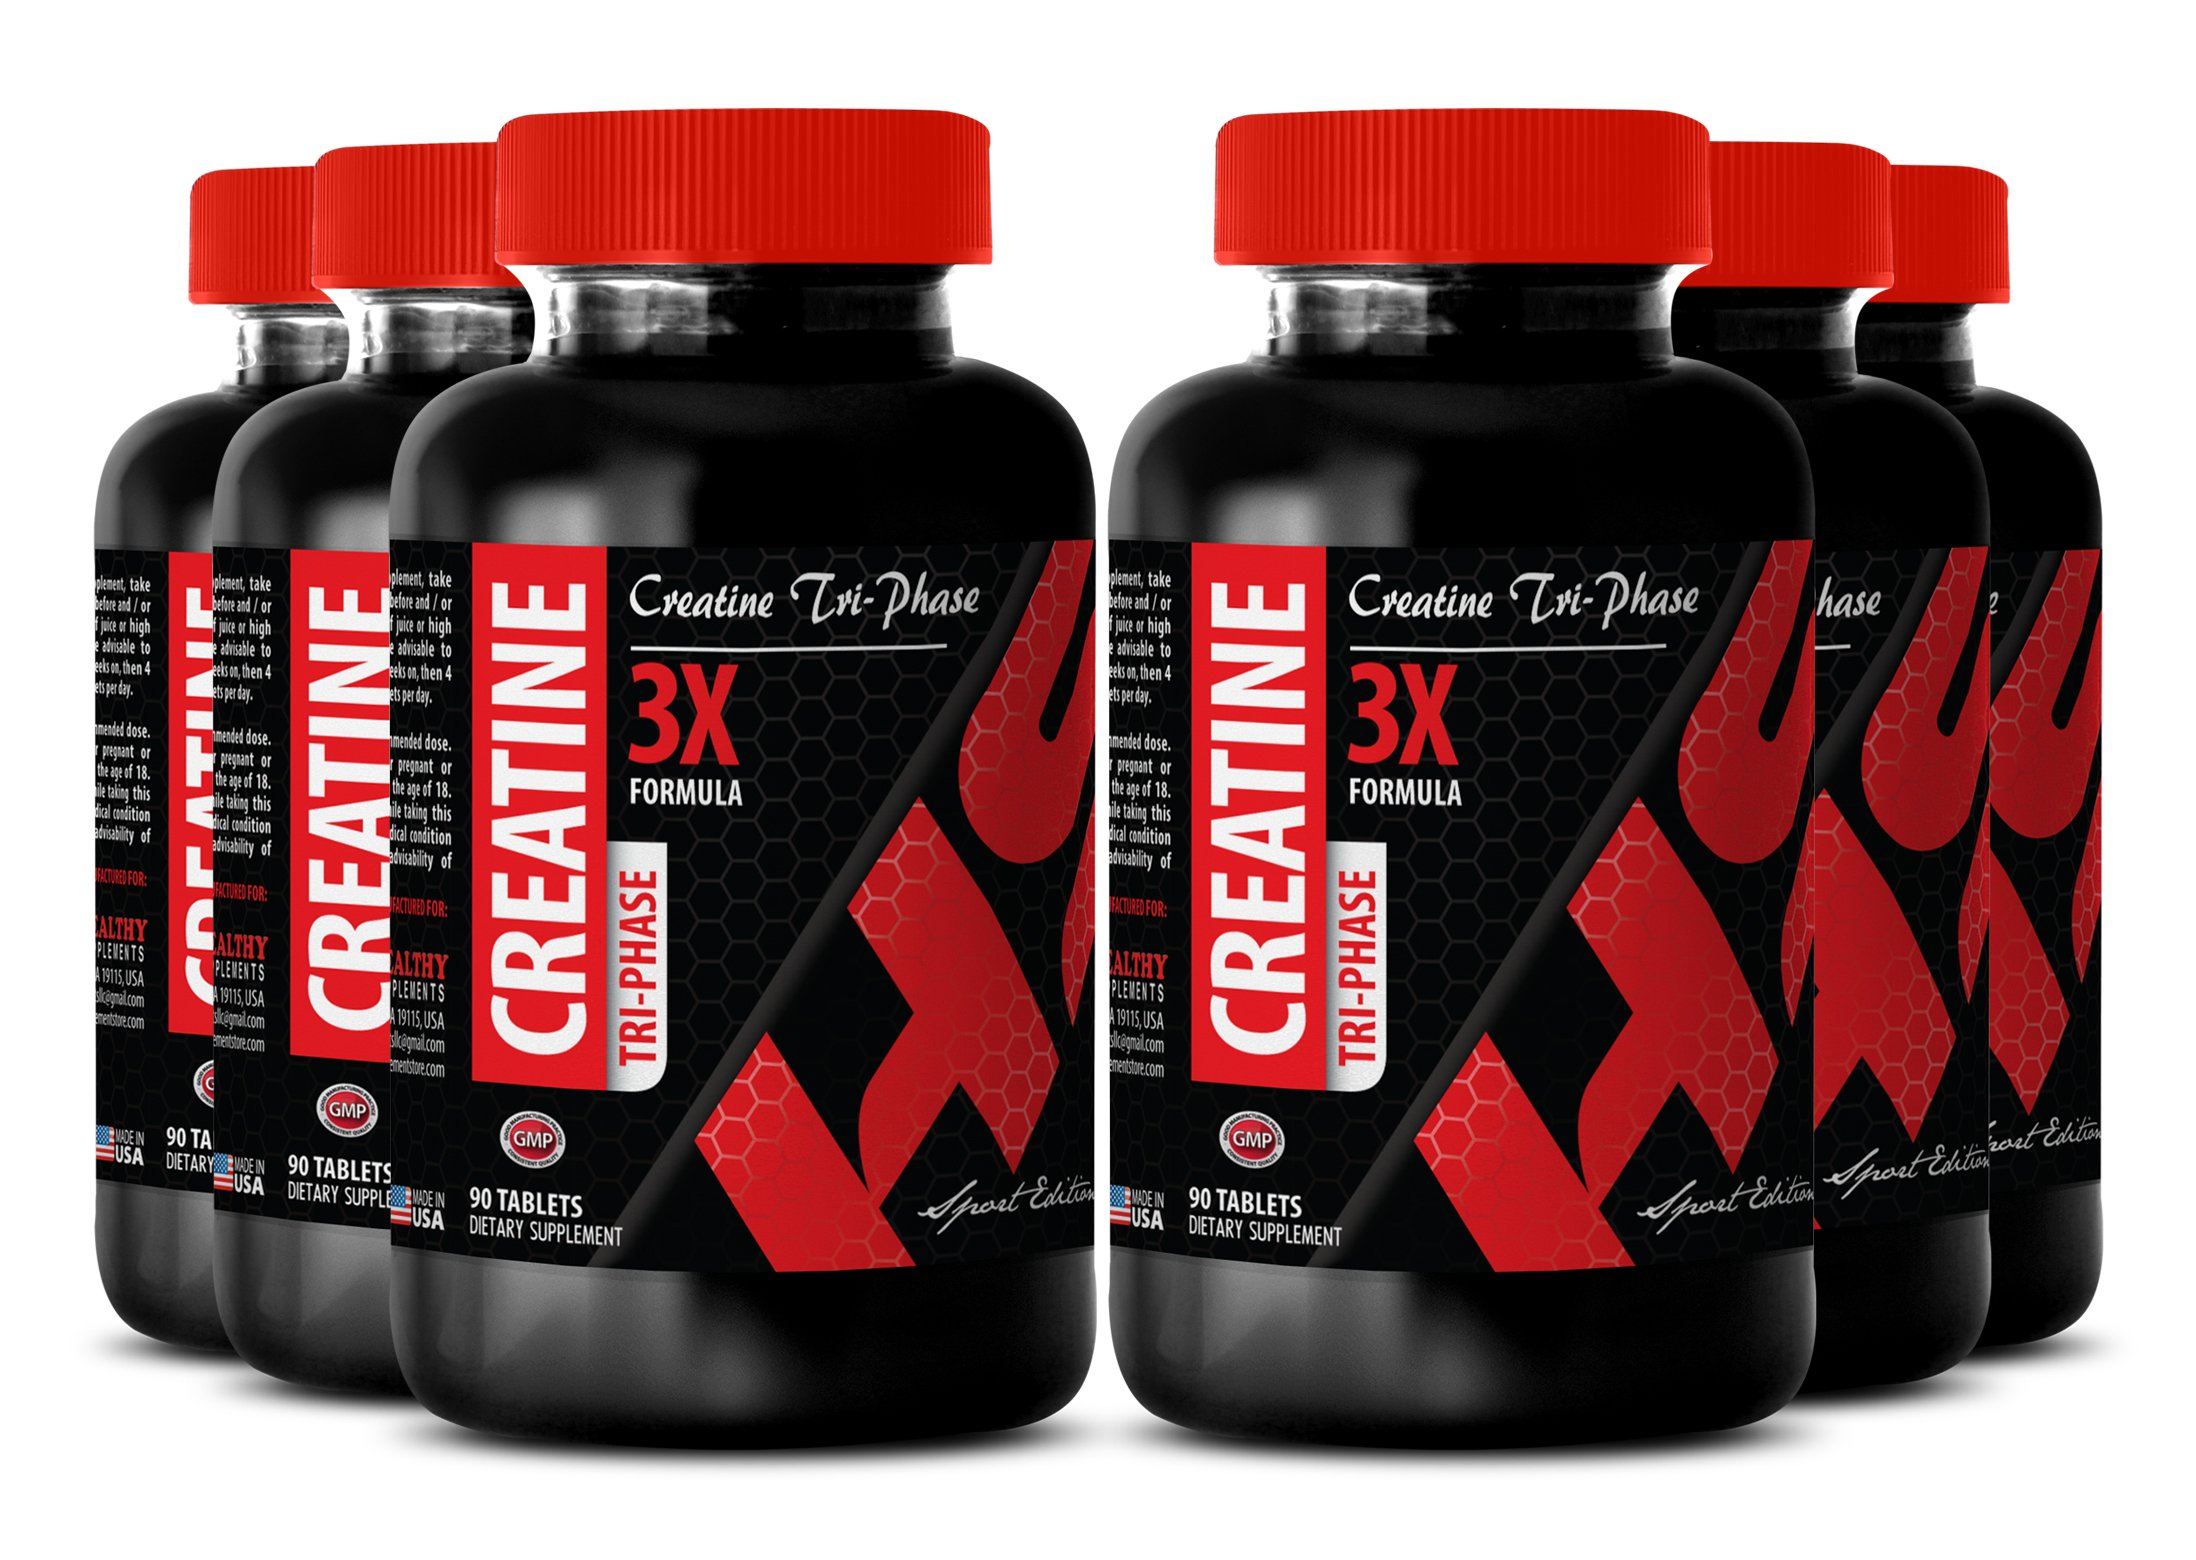 Creatine monohydrate capsules 1 gram - CREATINE TRI-PHASE 5000MG - athletic performance booster (6 Bottle)